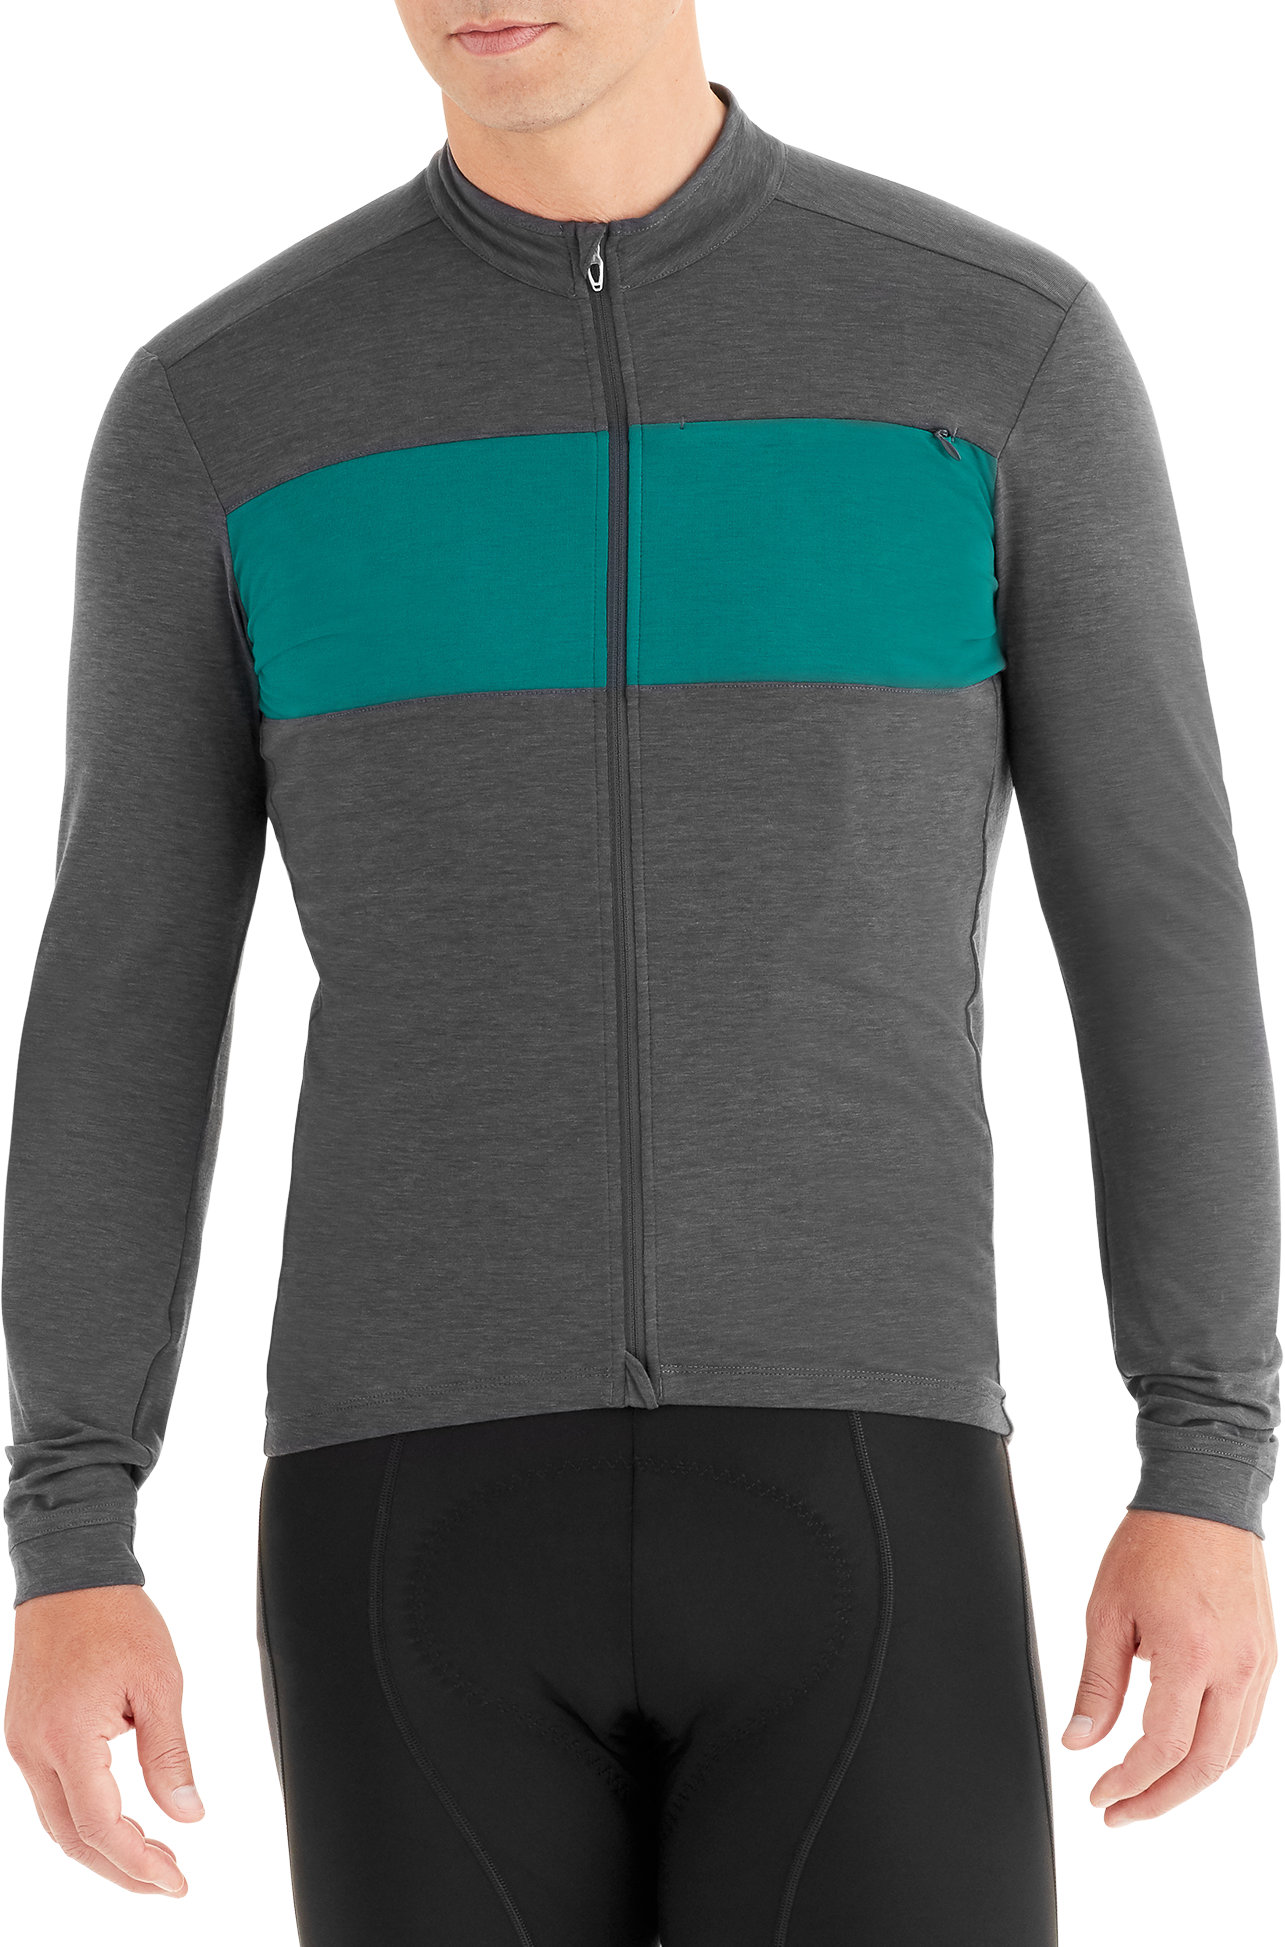 46d5c130bf4 RBX drirelease® Merino Long Sleeve Jersey | Specialized.com